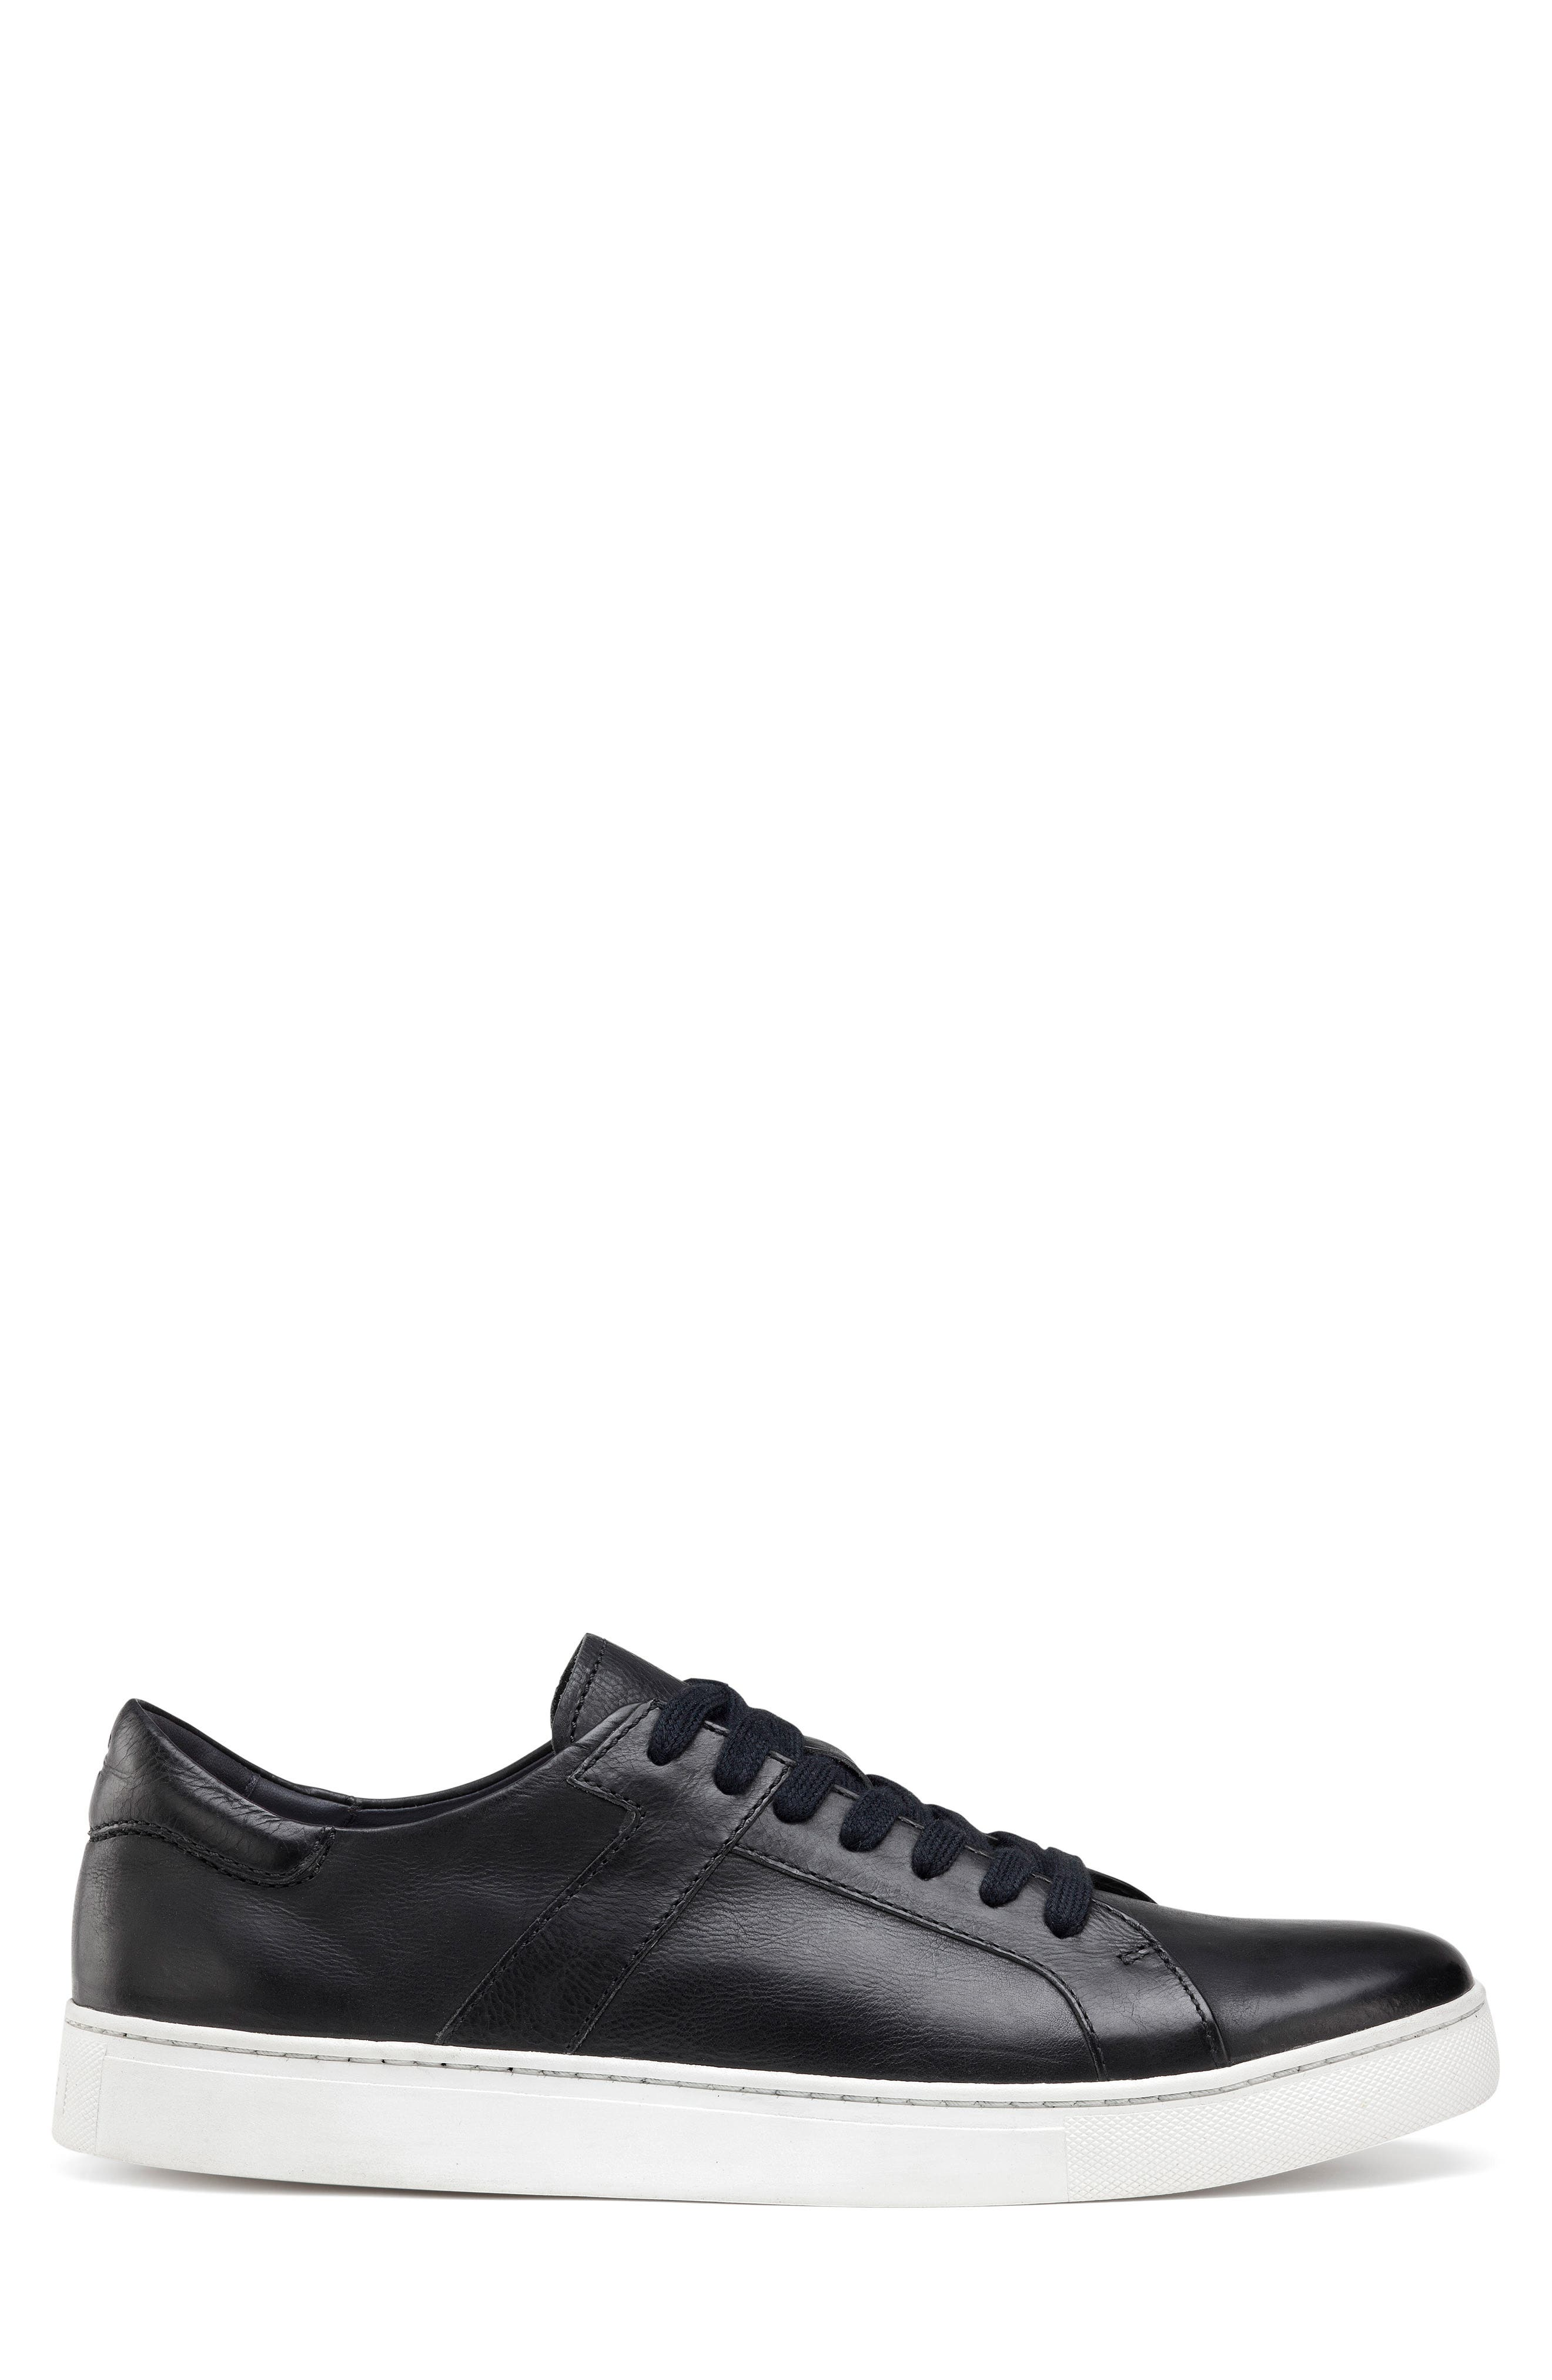 Aaron Sneaker,                             Alternate thumbnail 3, color,                             BLACK LEATHER